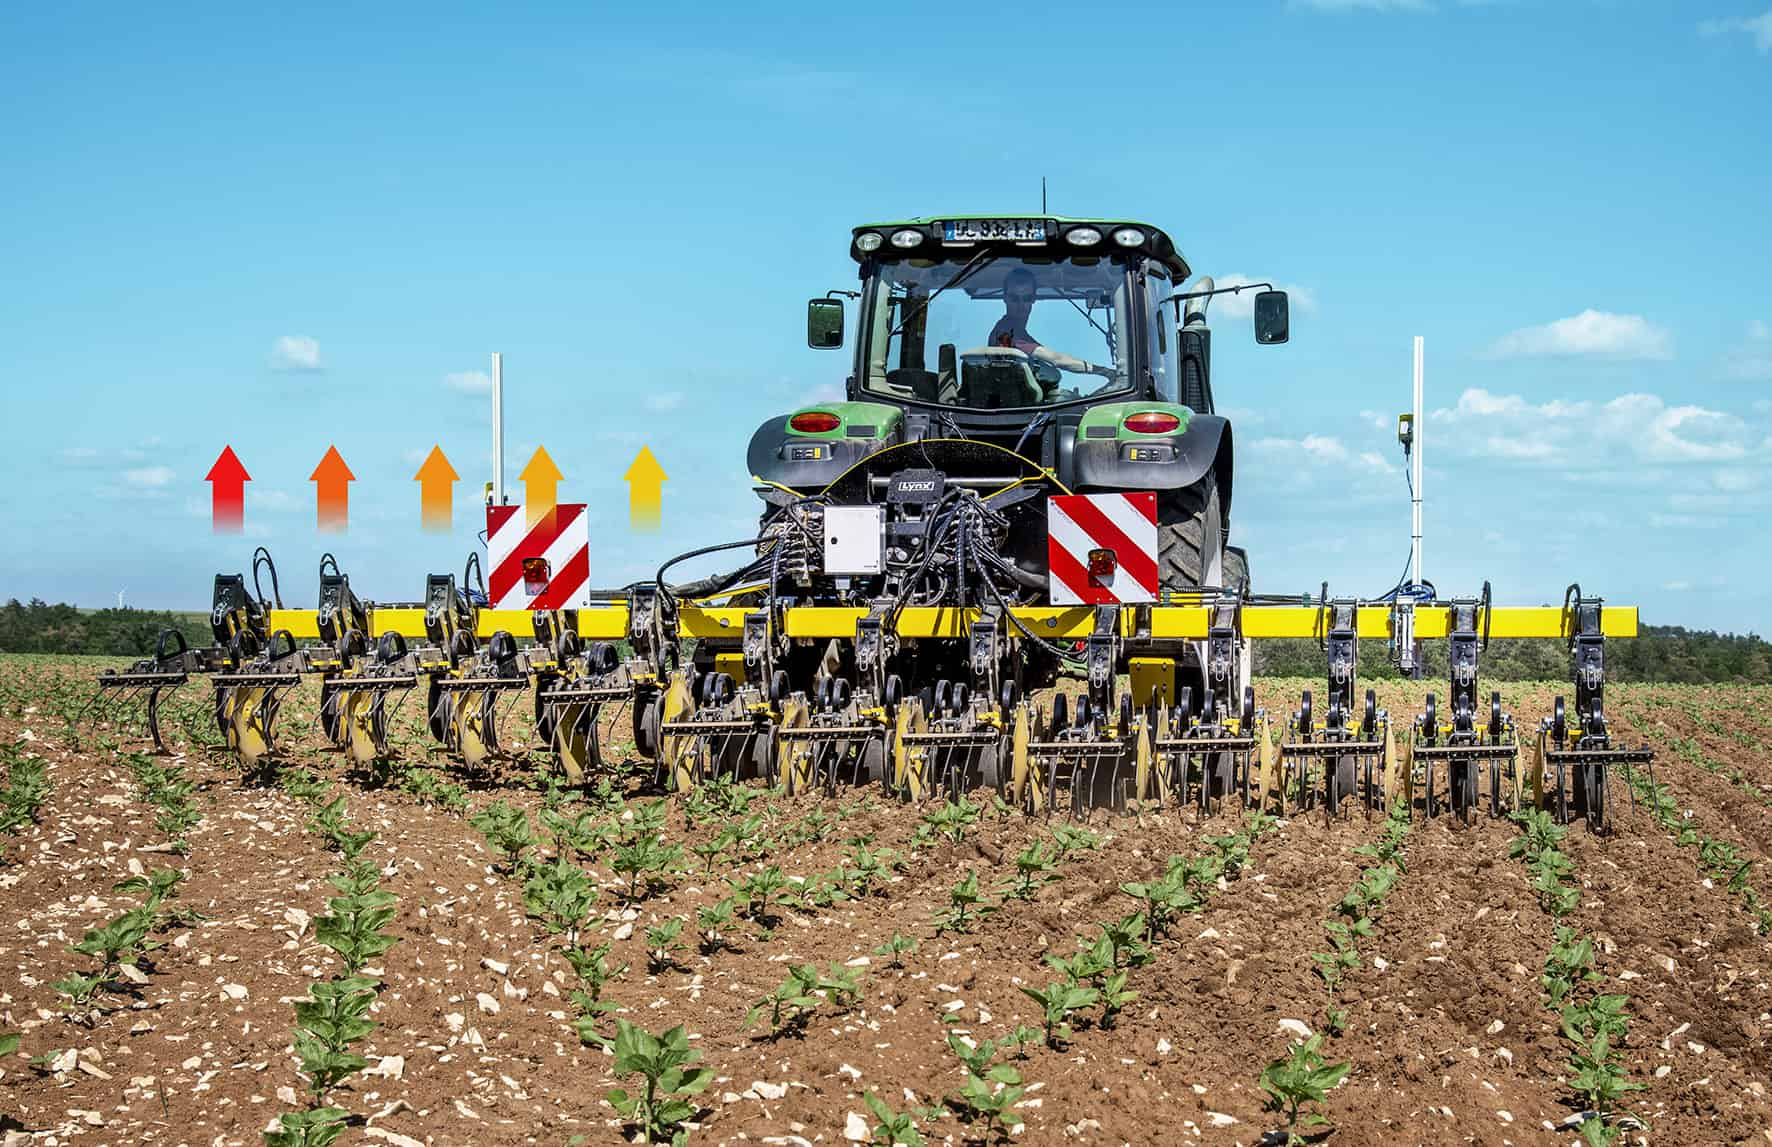 Hydraulic ISOBUS large crops precision row hoe. Row-by-row elements lifting in headland. Centralised depth setting